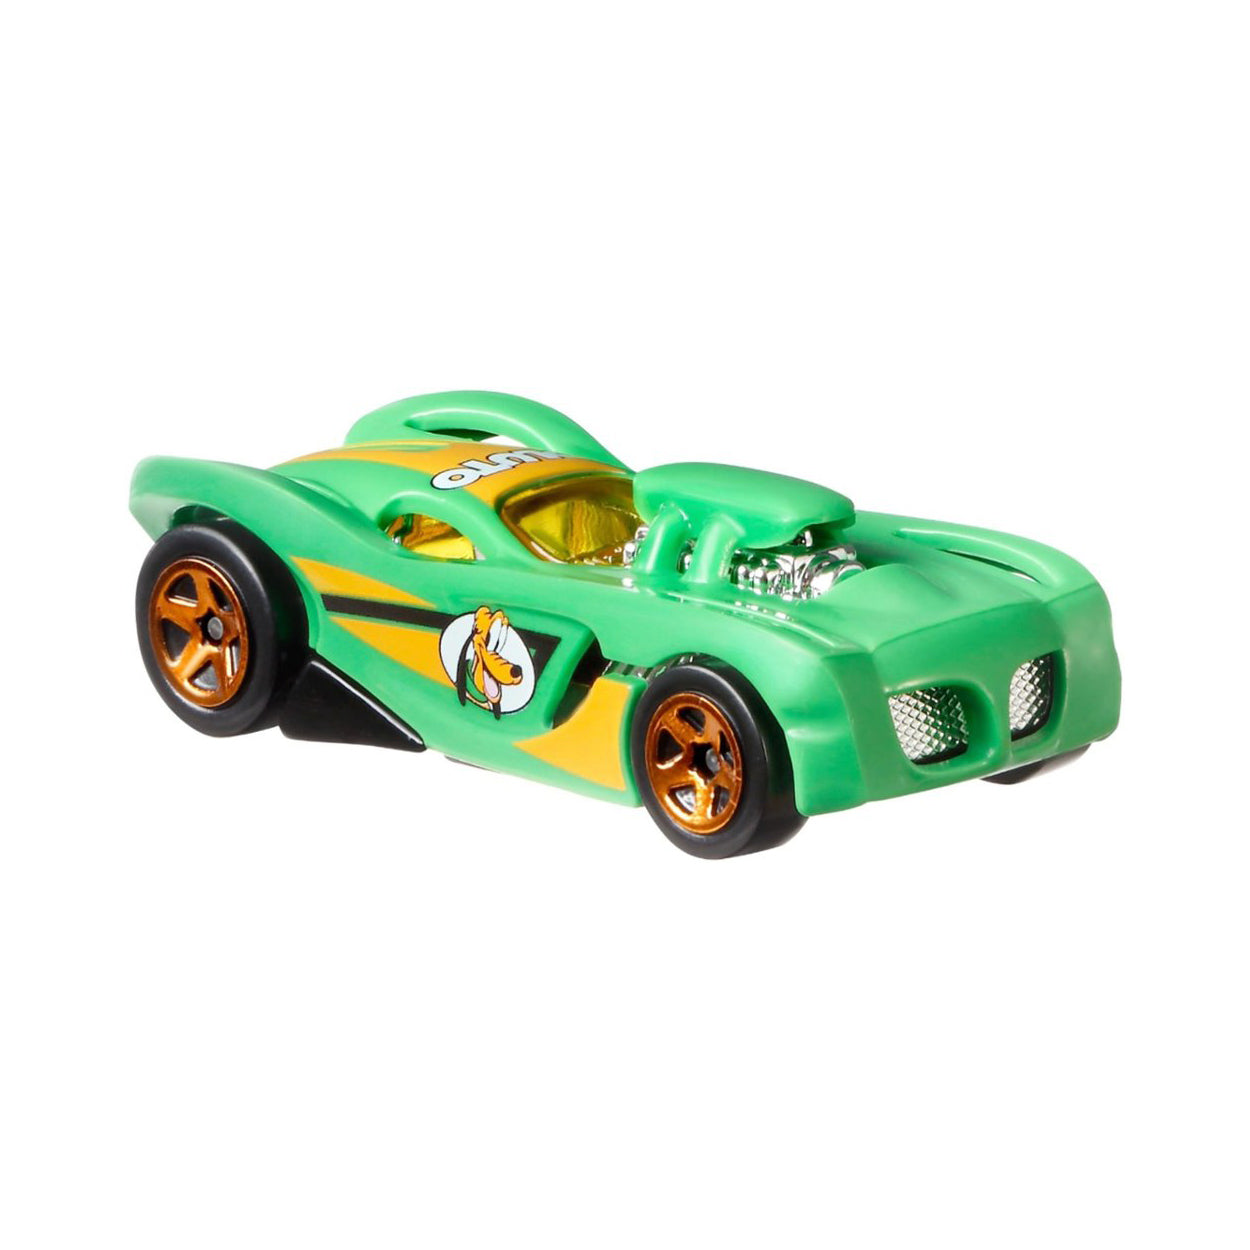 Hot Wheels Disney Mickey and Friends Pluto Vehicle (GBB44)